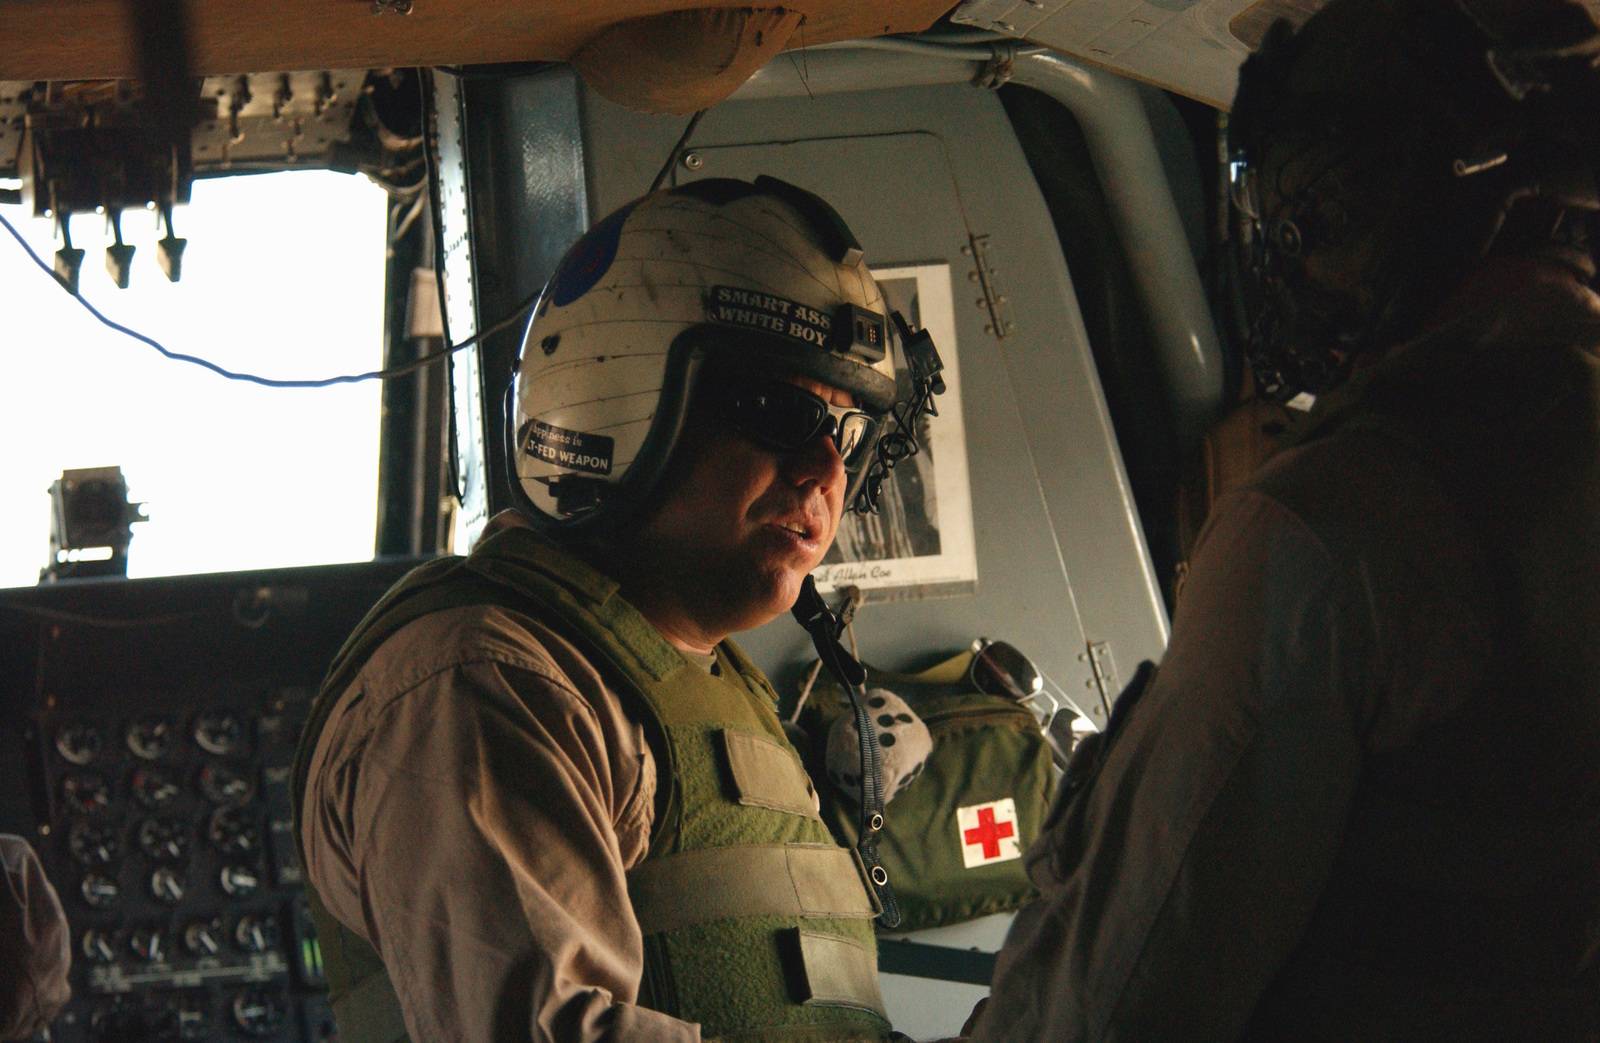 US Marine Corps (USMC) STAFF Sergeant (SSGT) Dennis Thurston, a Crew CHIEF from 24th Marine Expeditionary Unit, prepares for takeoff in an MH-53J Pave Low helicopter to practice Special Purpose Insertion and Extraction (SPIE) in support of Operation ENDURING FREEDOM